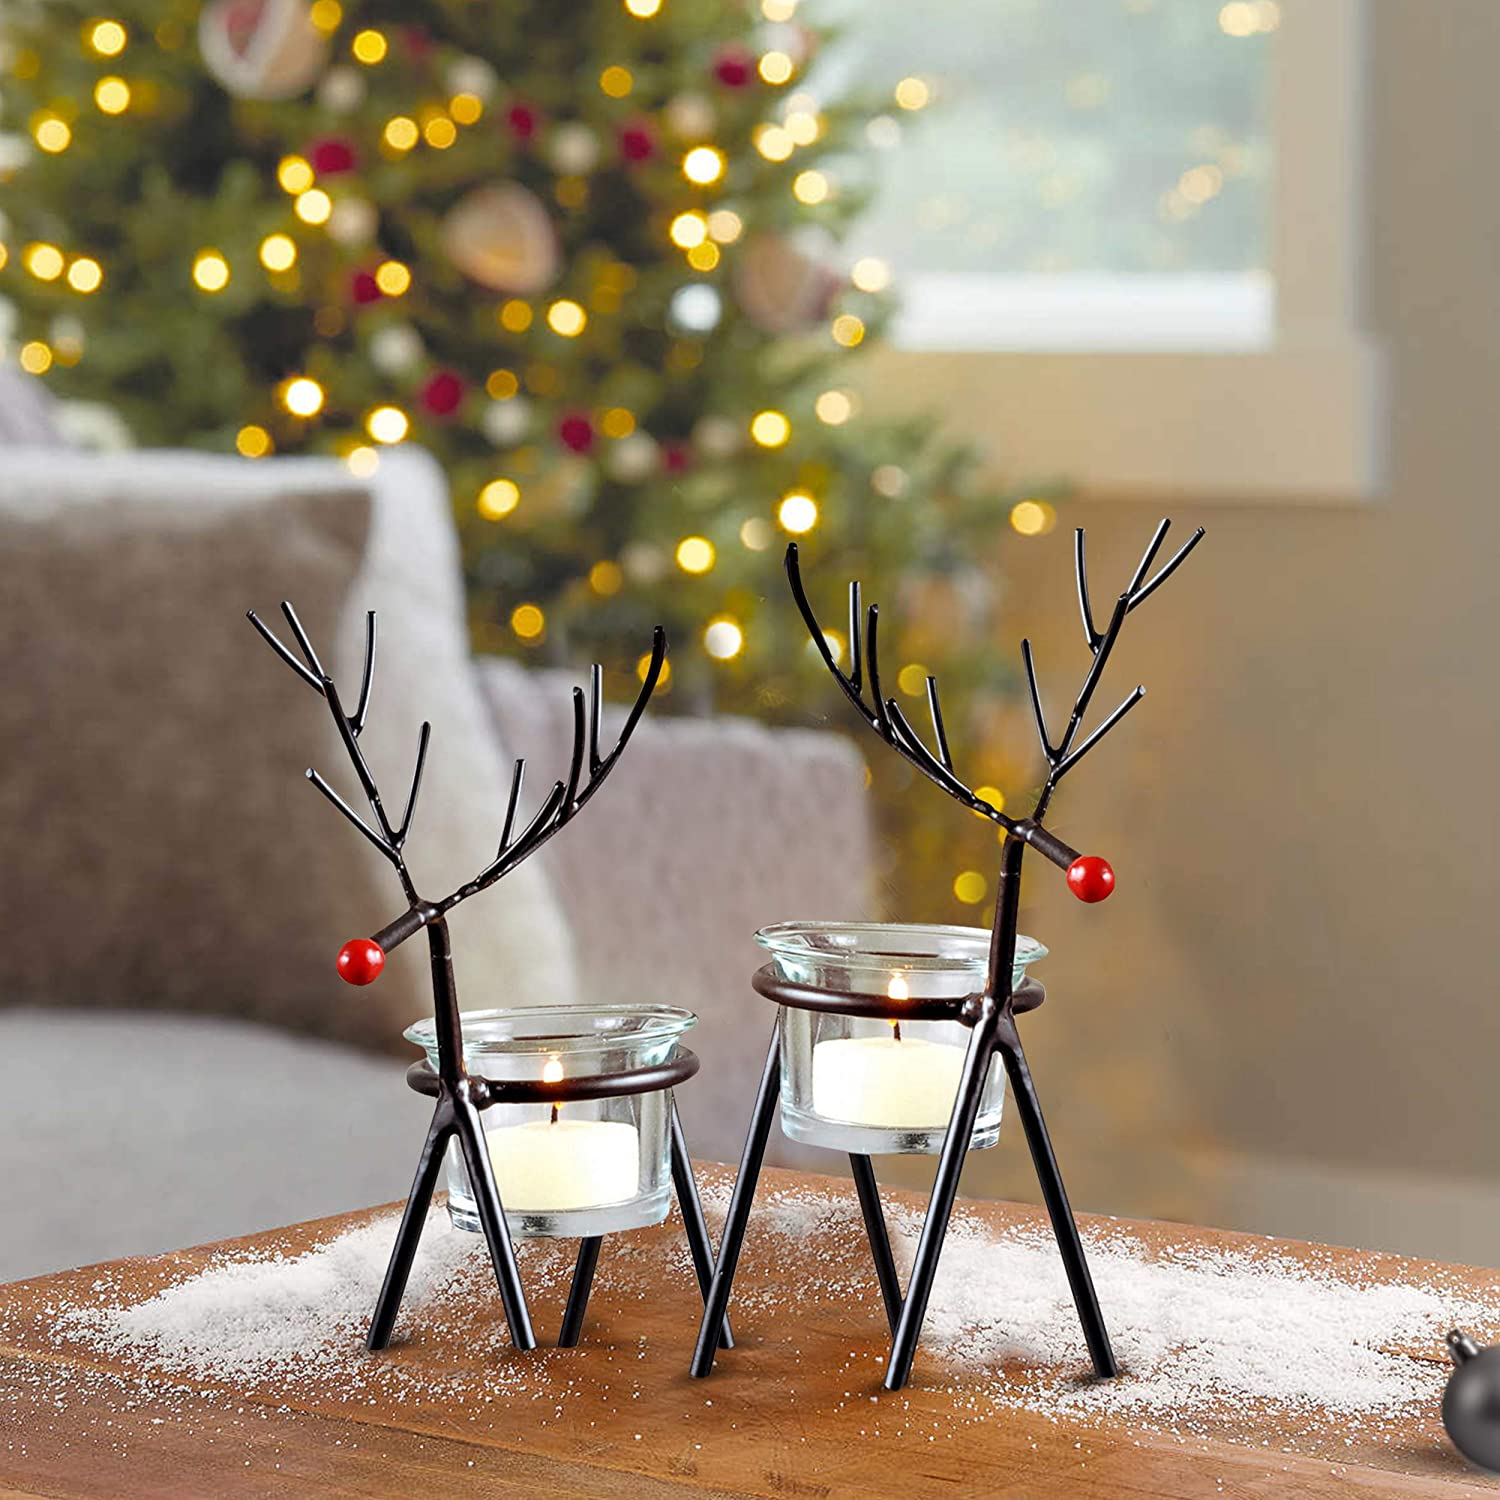 Buy Tied Ribbons Reindeer Tealight Candle Holders Home Decoration Items For Living Room Bedroom Dining Room Tealight Candle Holders For Home Decor Pack Of 2 Online At Low Prices In India